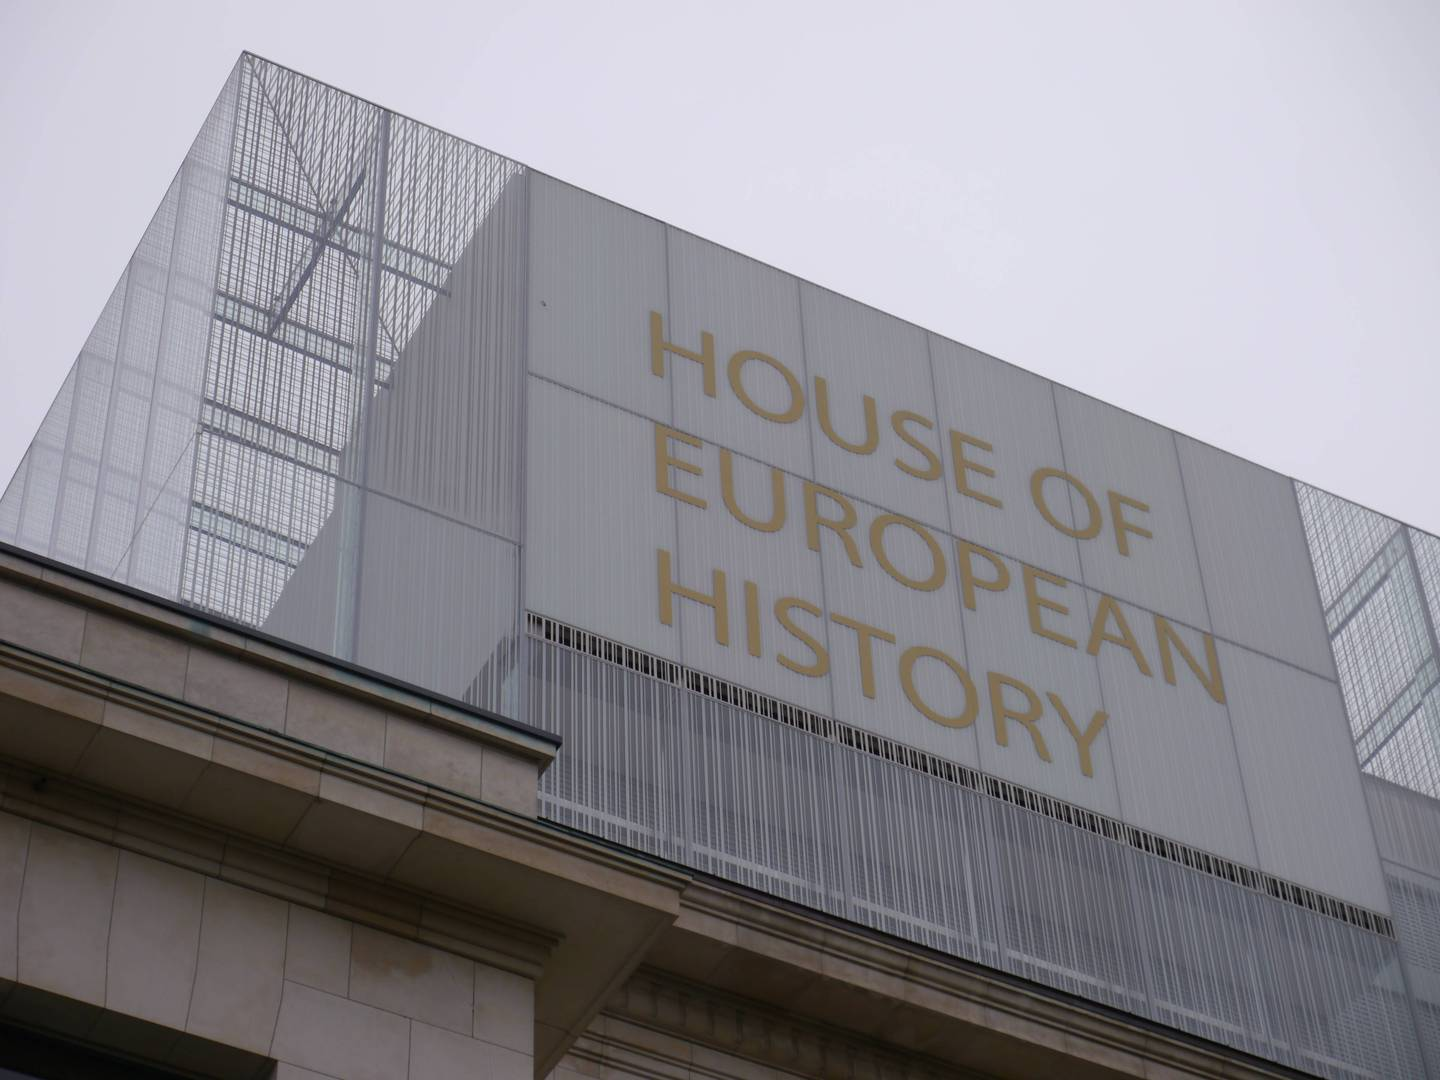 Building of The House of European History from outside. The name is on the building in big golden letters